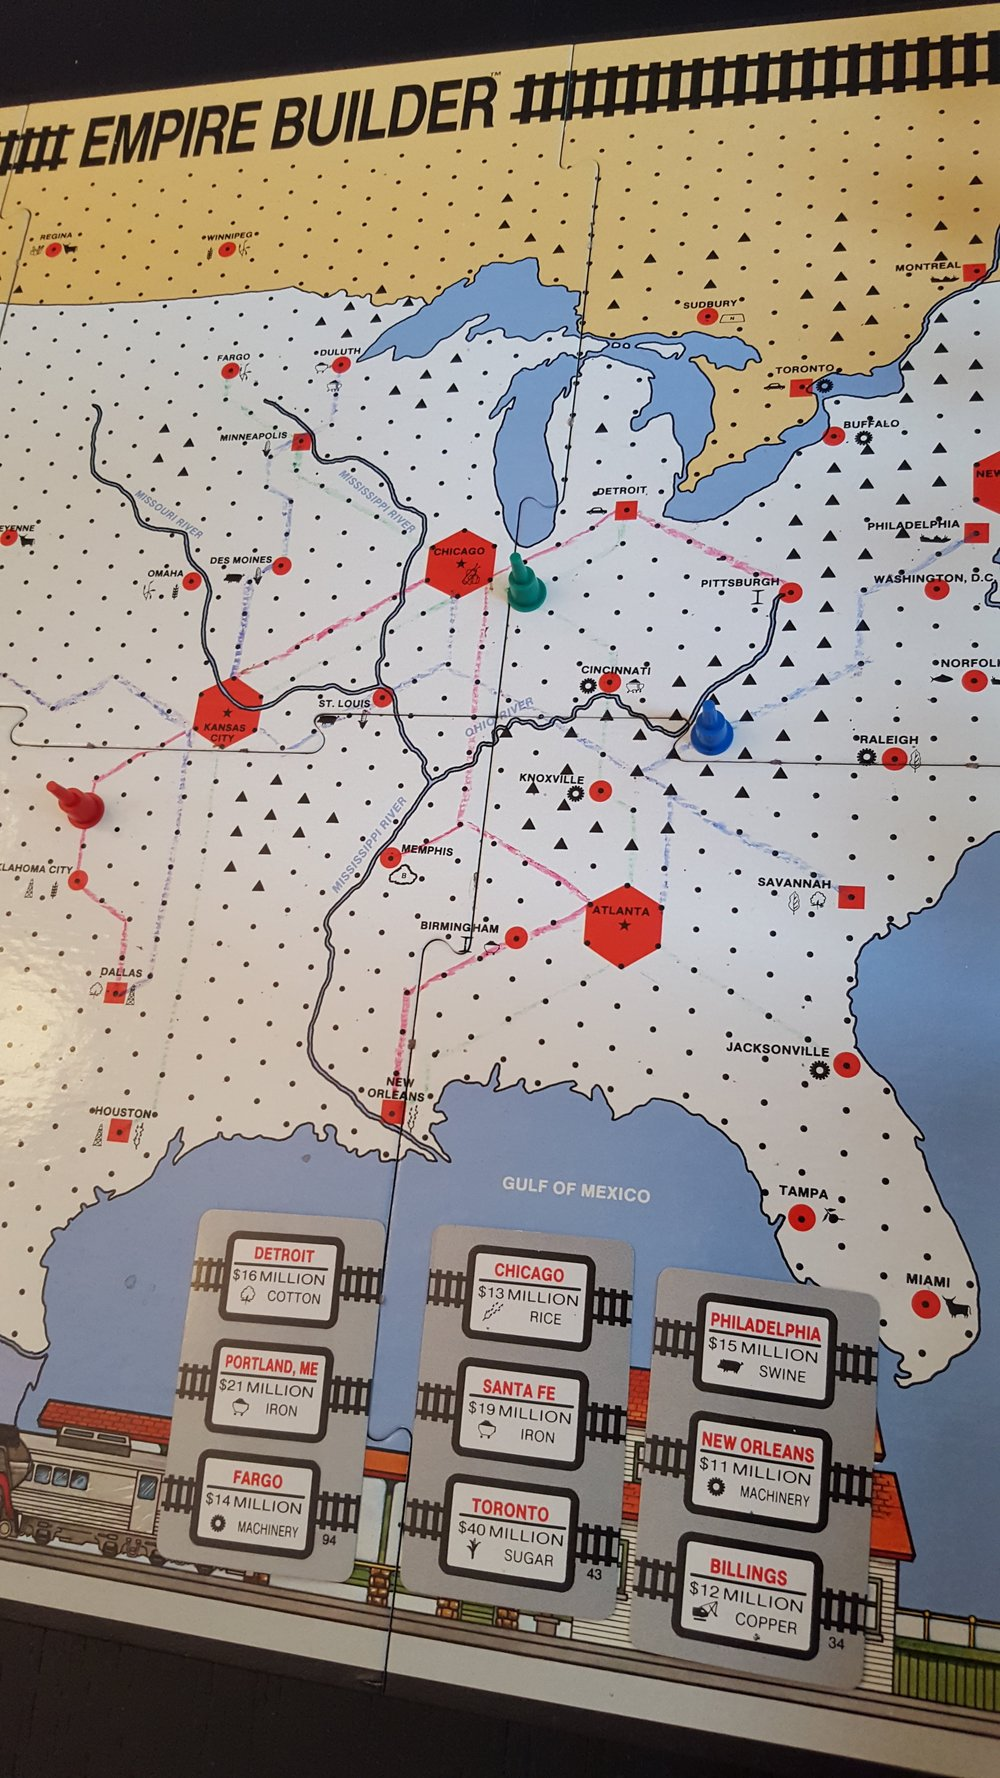 Empire Builder game in progress with three players and example demand cards.